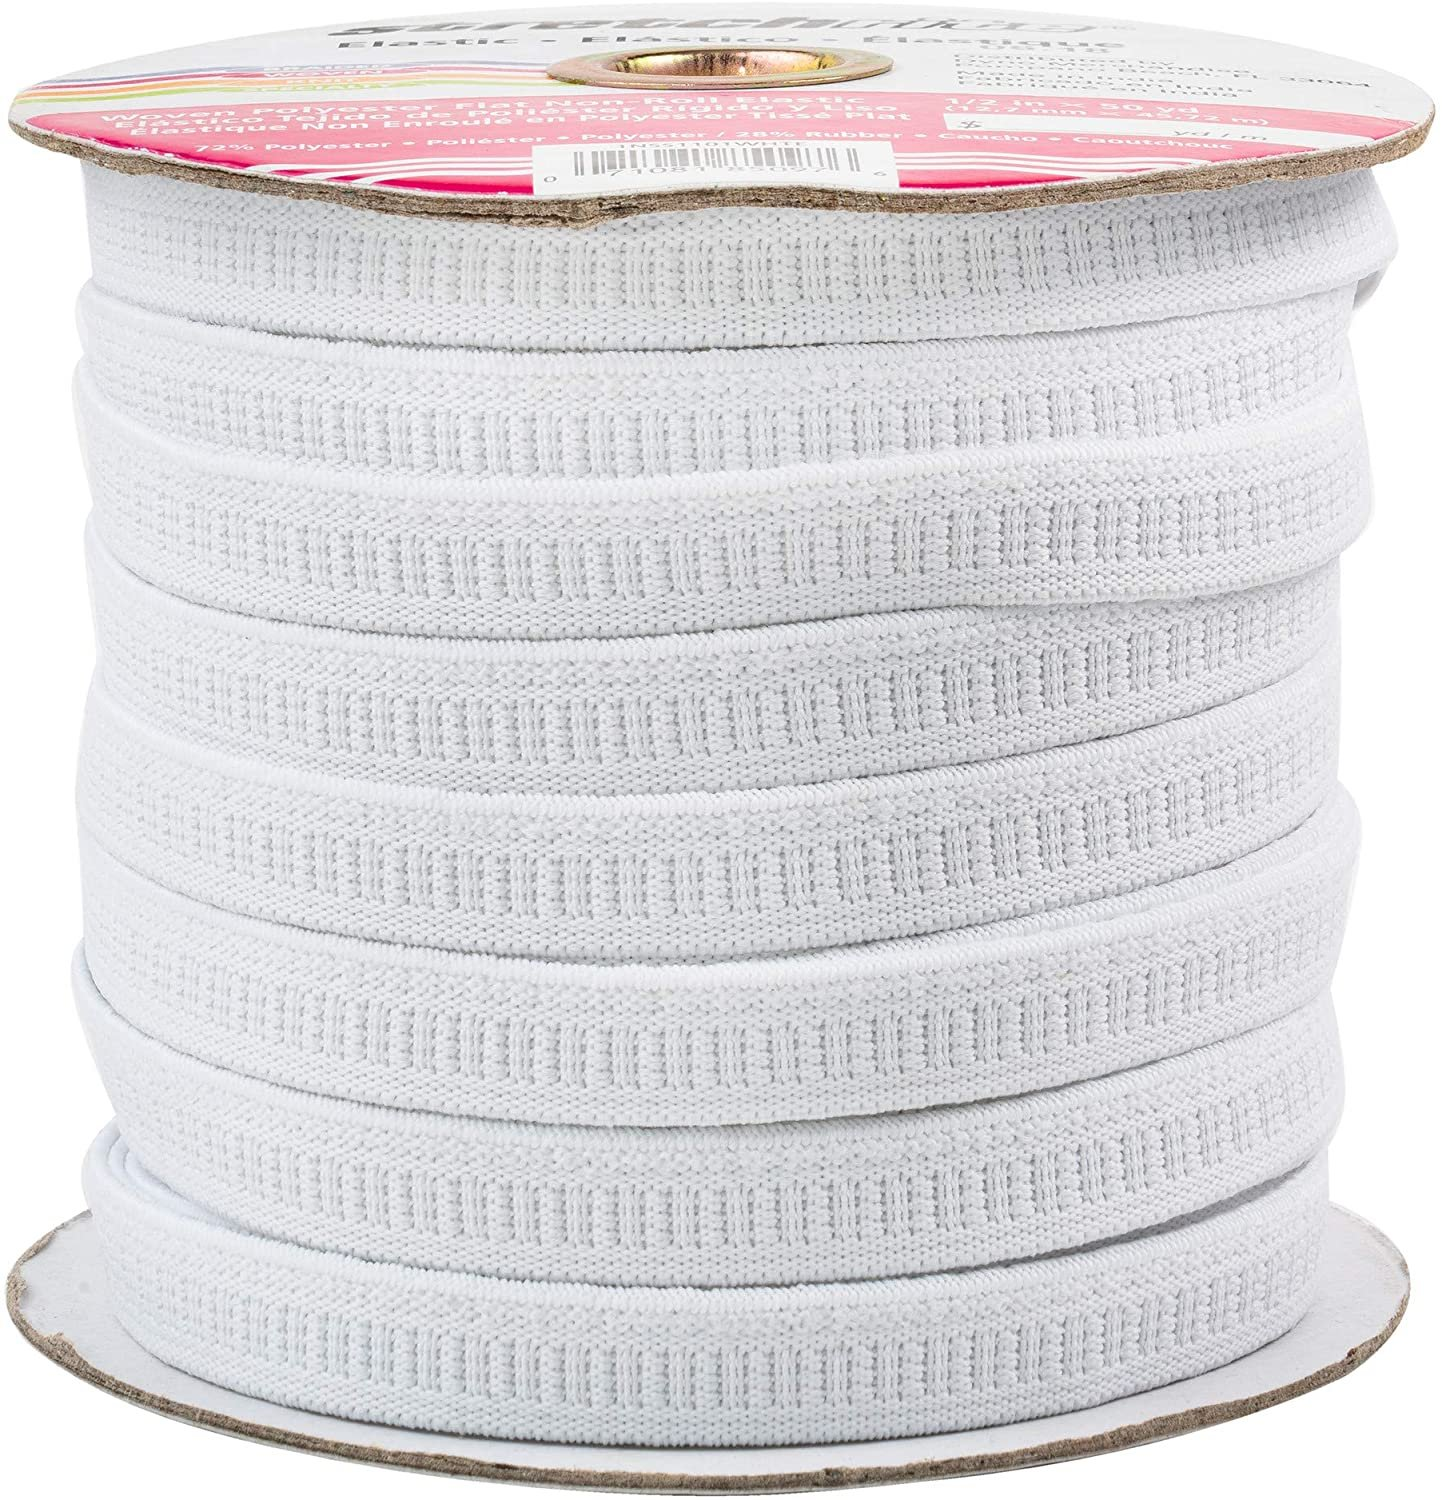 Stretchrite - Latex-Free - Woven Polyester Non-Roll Elastic - .5 inch - White - 1NSS1101White - SEE NOTE